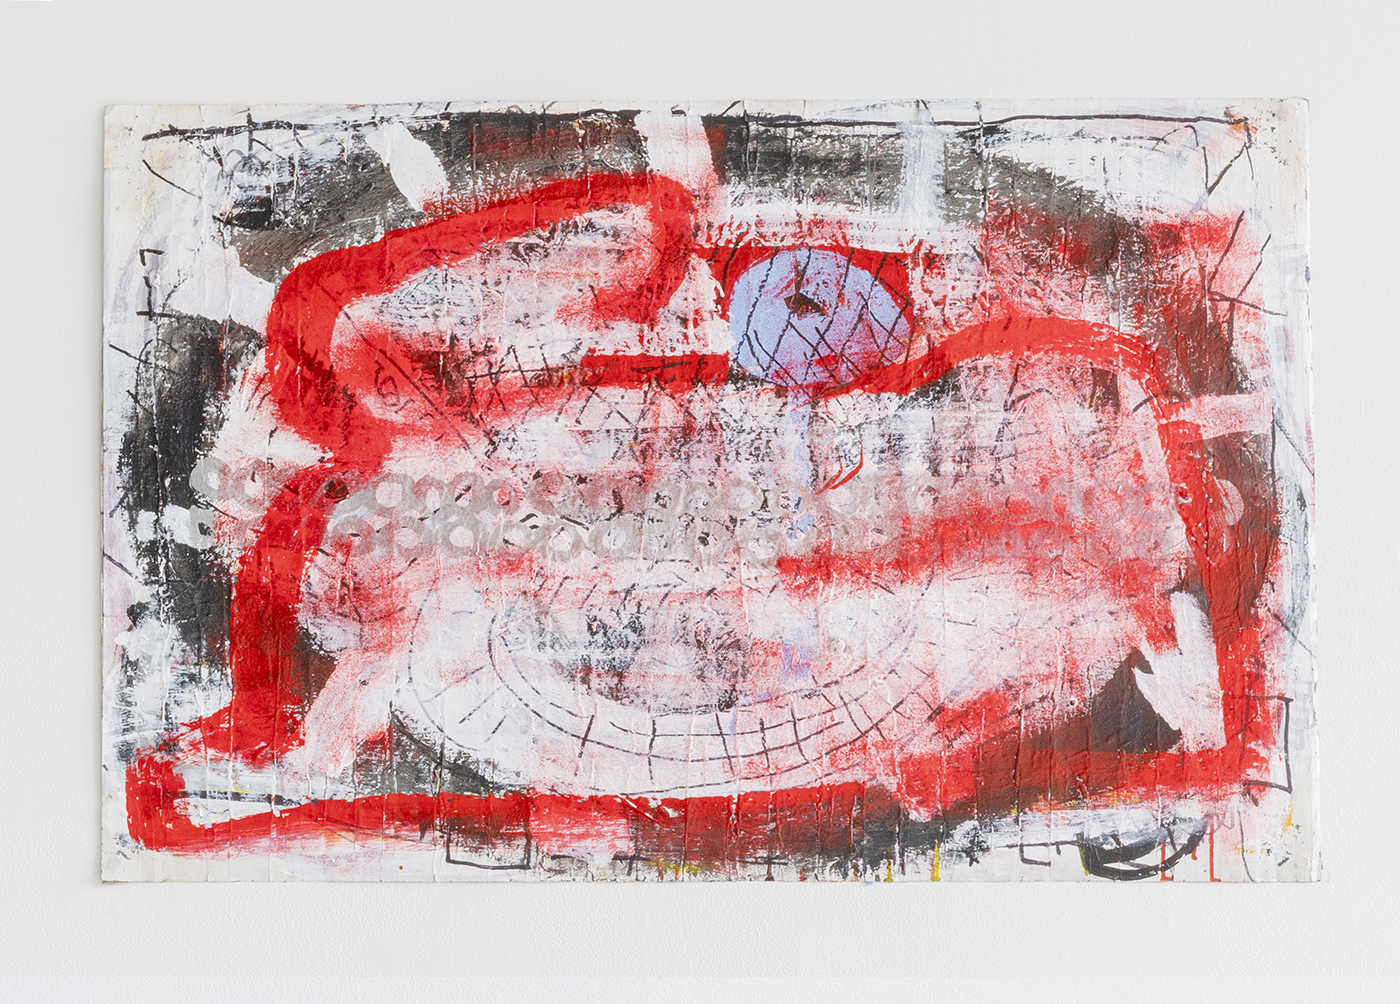 Luchs_Red_Rabbit_4_on_paper_26x40_2020_DESOUSA_GALLERY_web